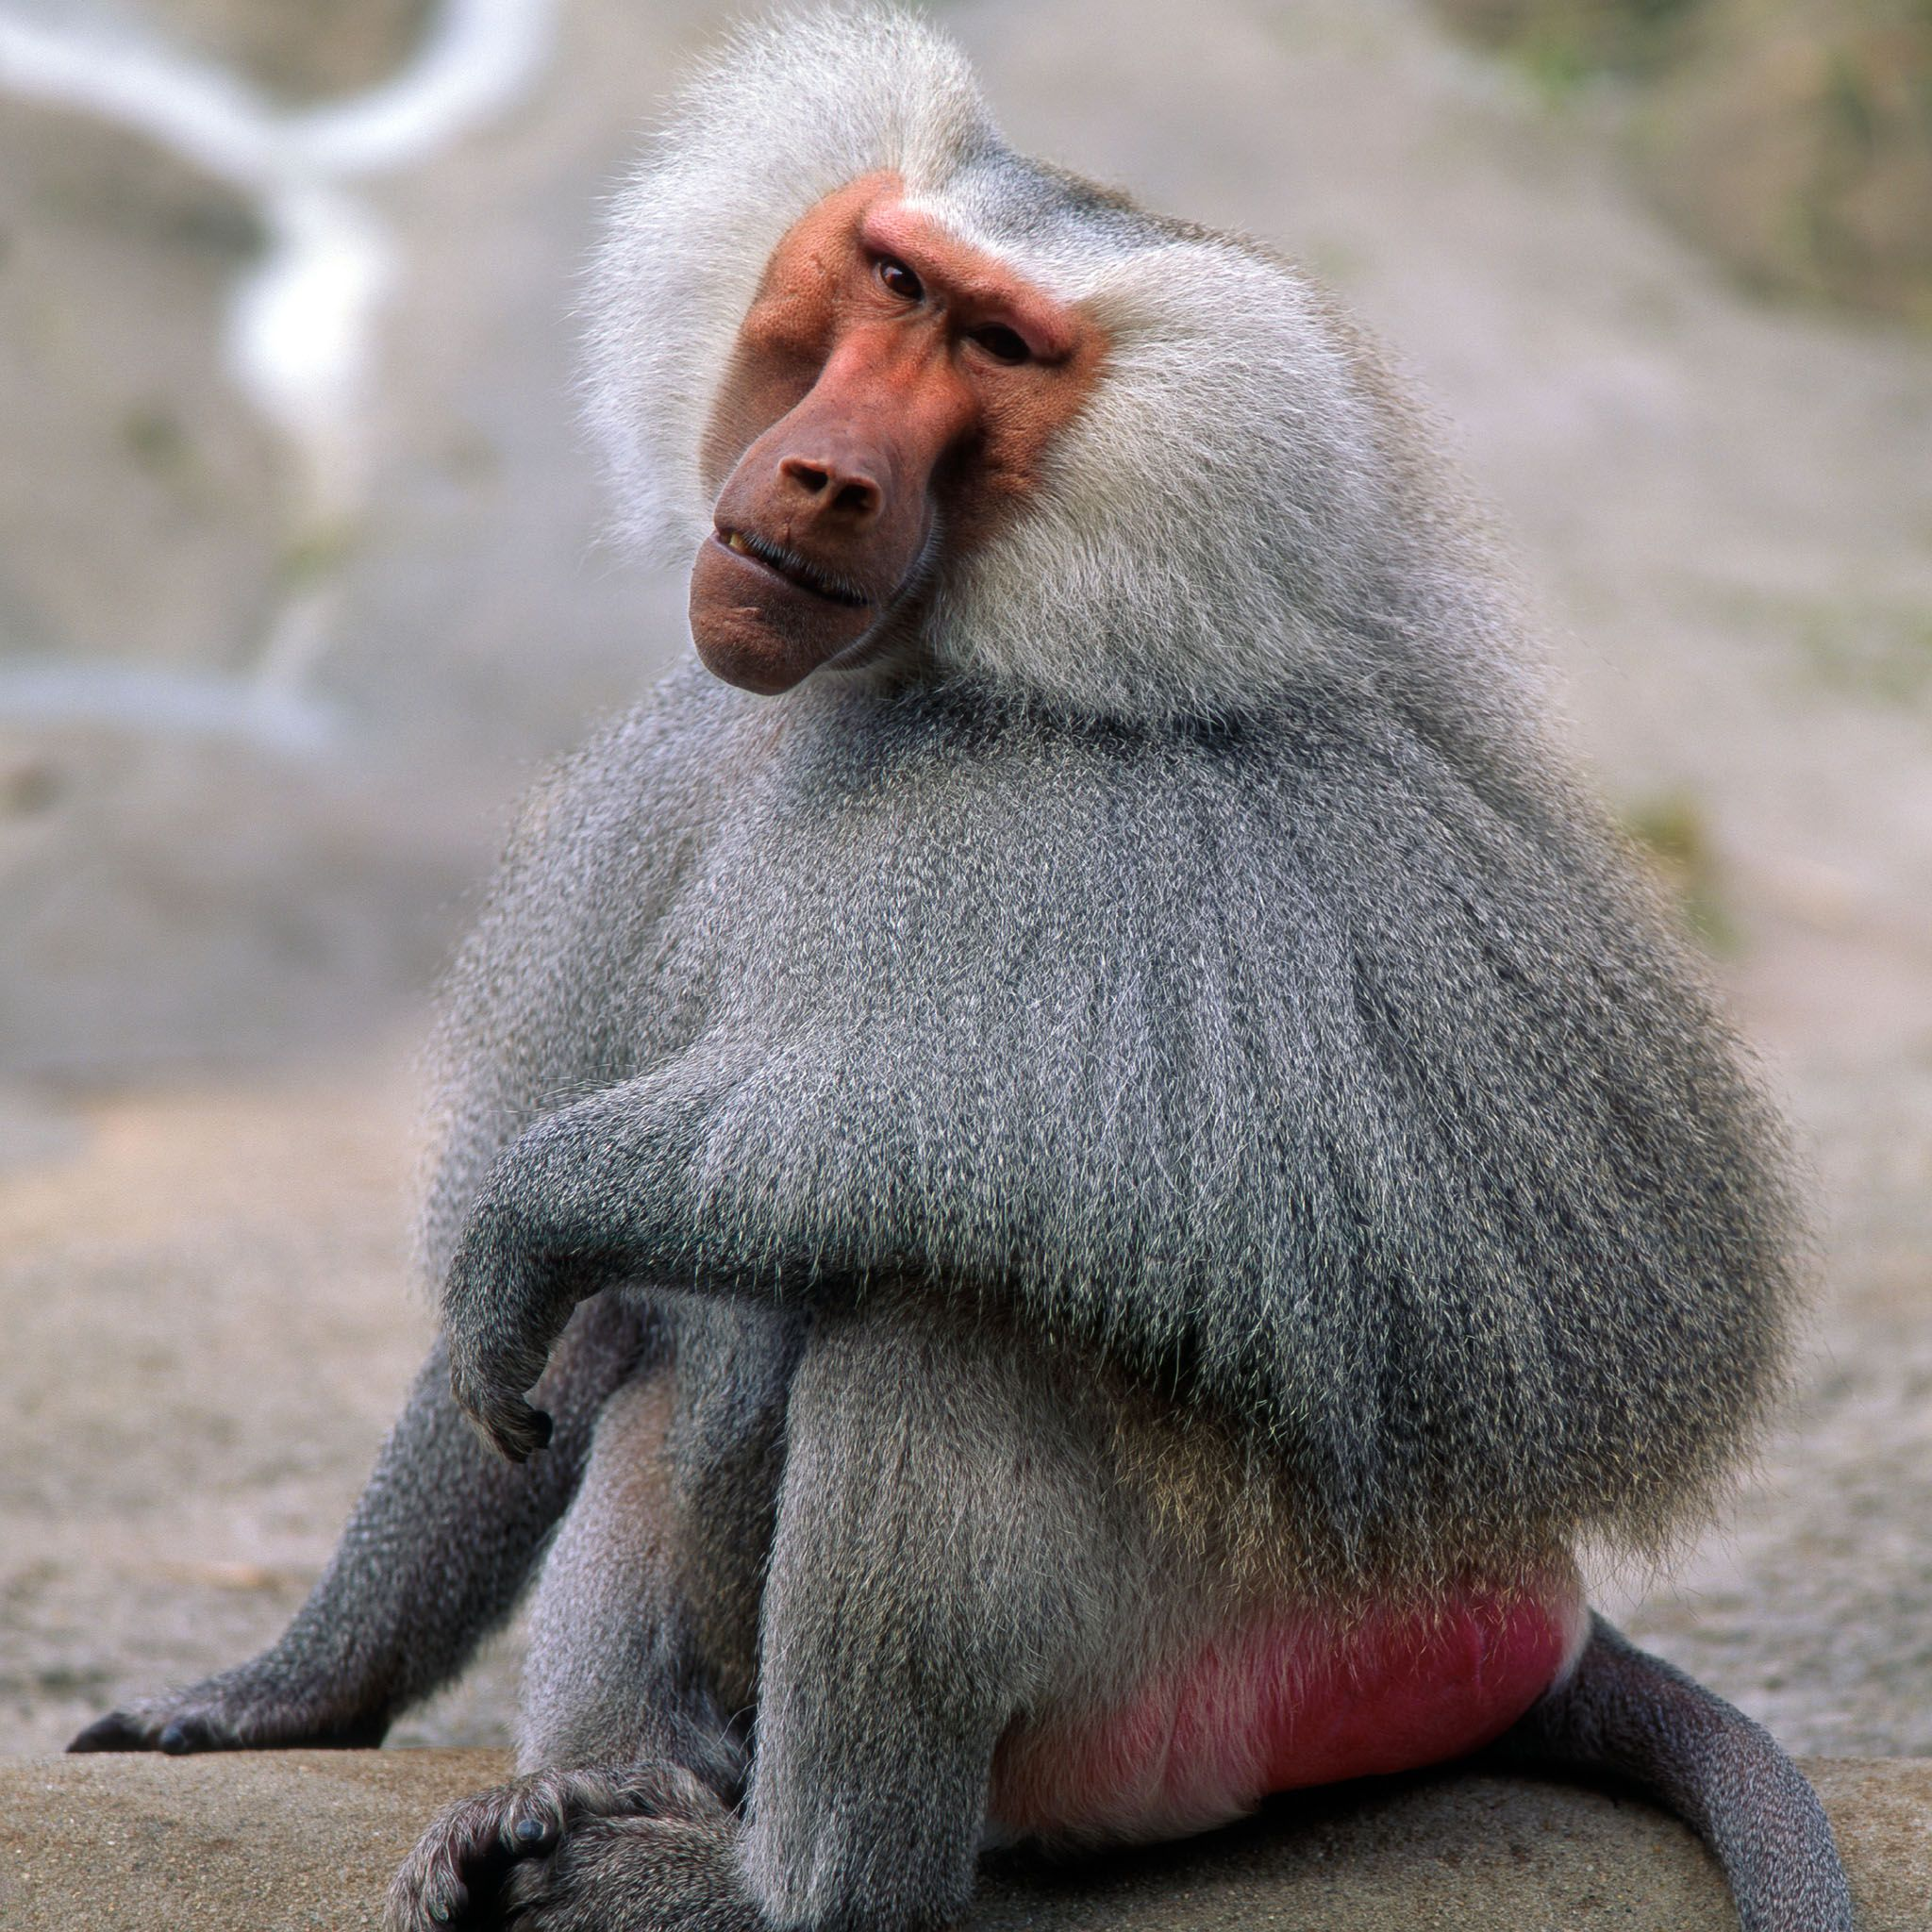 Baboon | Baboon Grey 2048 x 2048 iPod 3 wallpapers, backgrounds ...